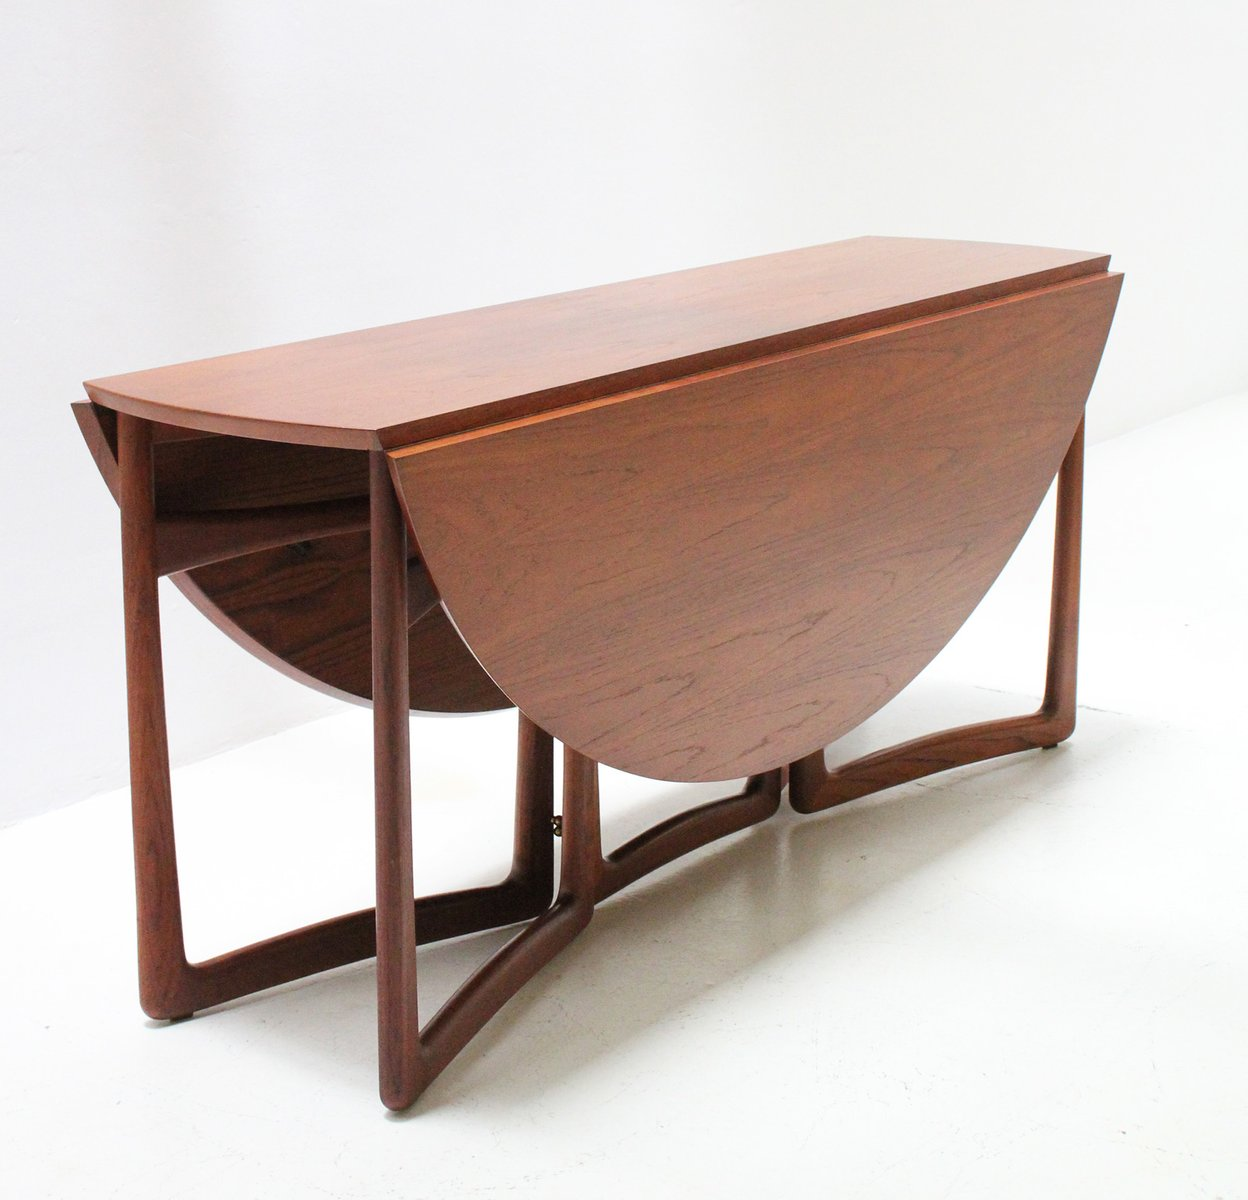 Drop Leaf Dining Table By Hvidt Mølgaard For France Daverkosen